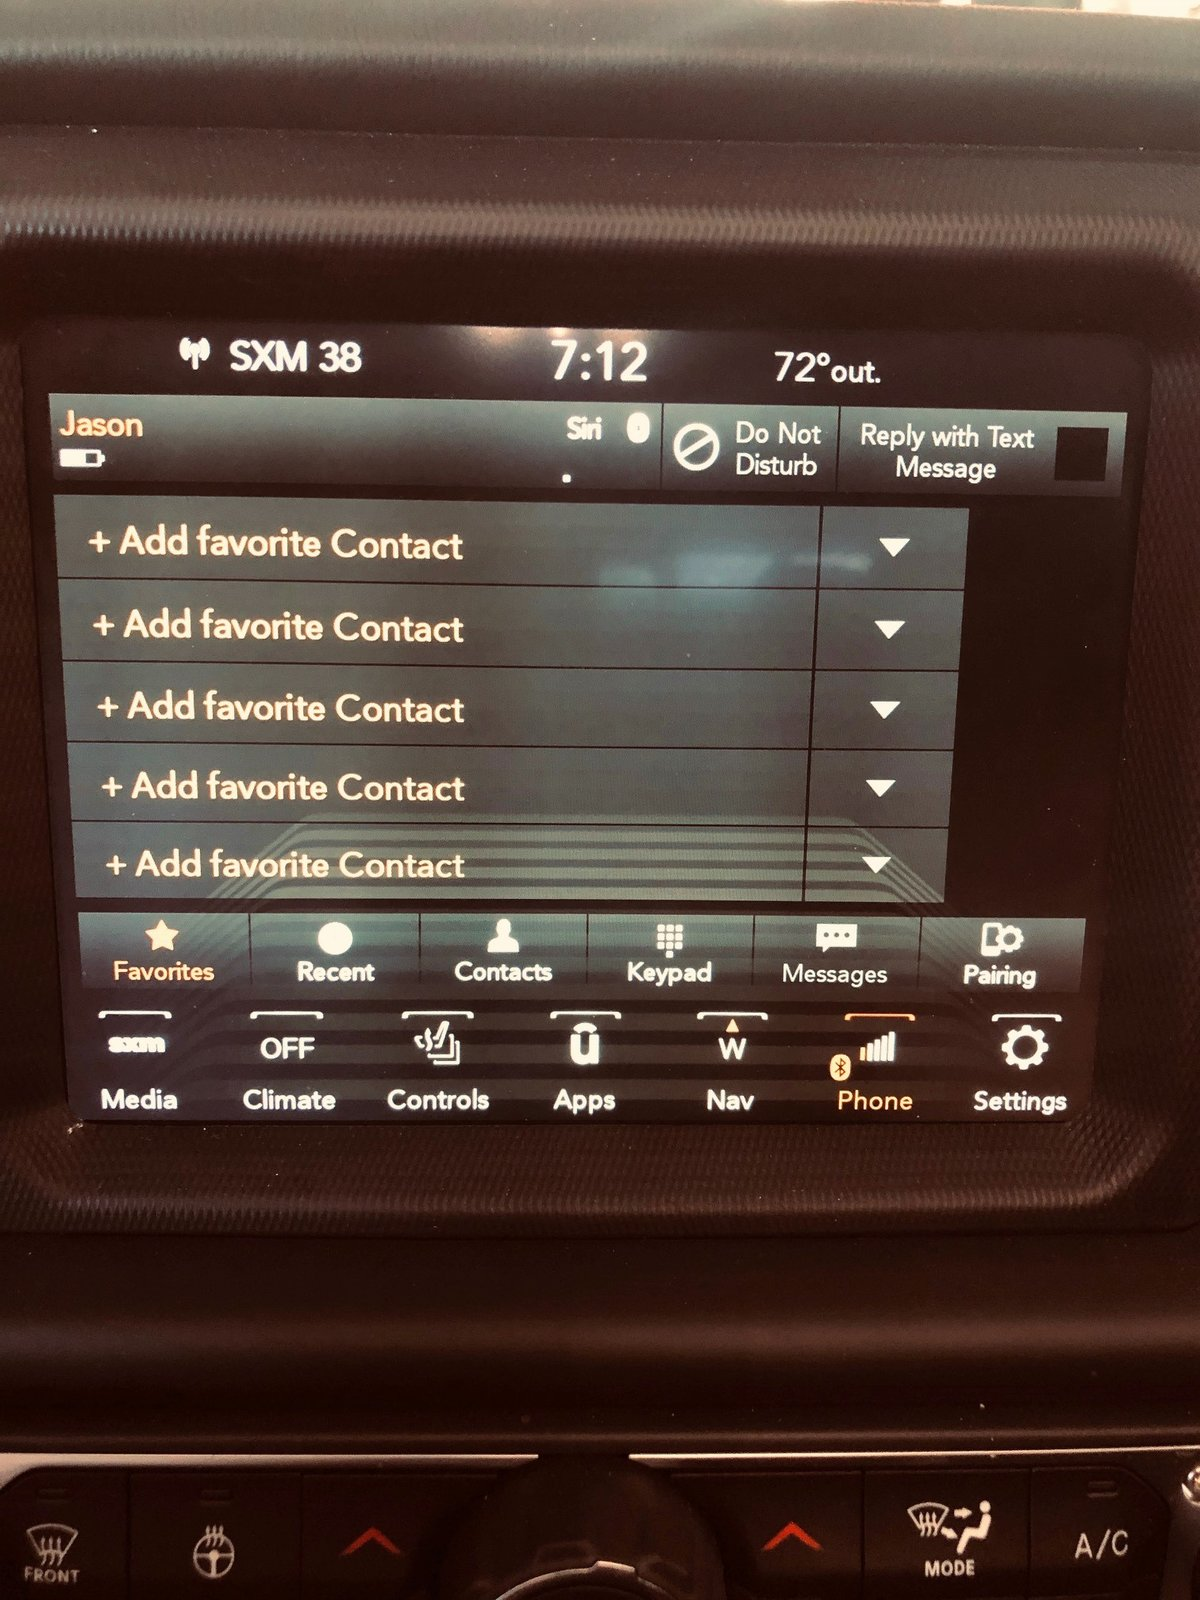 Uconnect Phone Not Available Jeep : uconnect, phone, available, Uconnect, Update, Issues, Carplay, Gladiator, Forum, JeepGladiatorForum.com